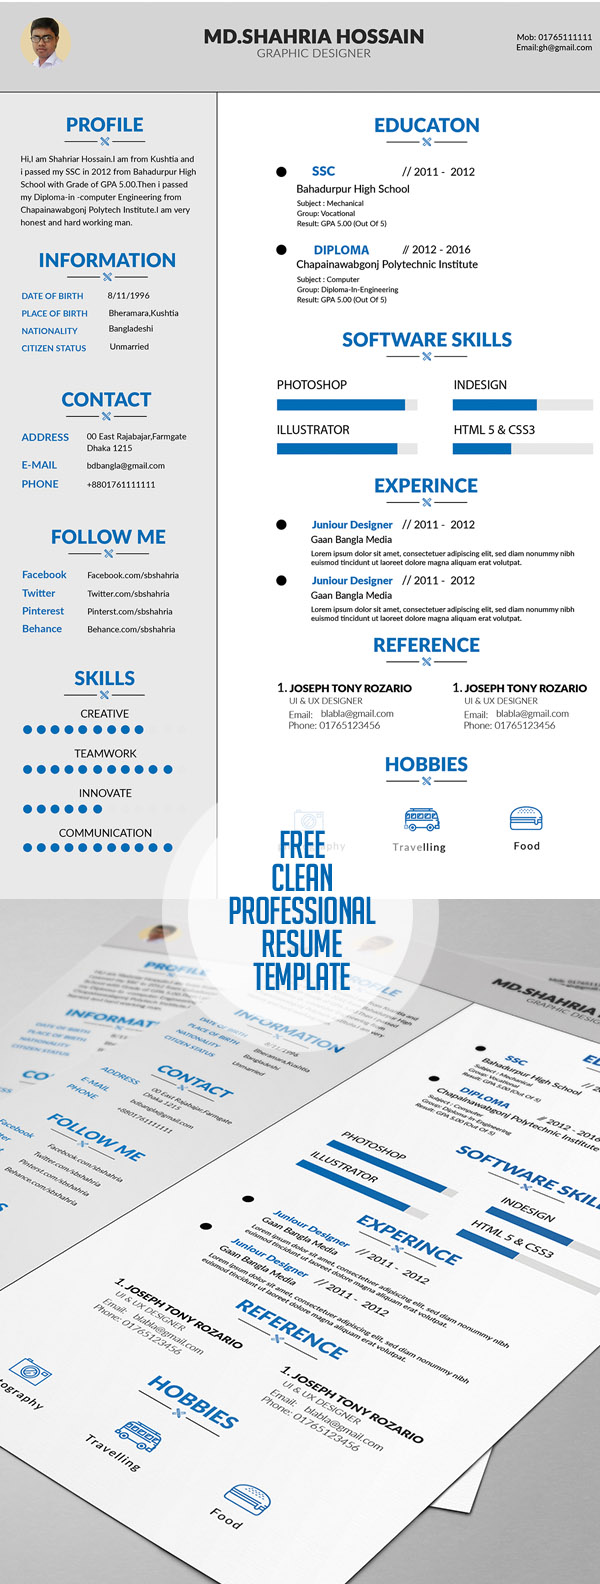 Free Cv  Resume Templates   Freebies  Graphic Design Junction